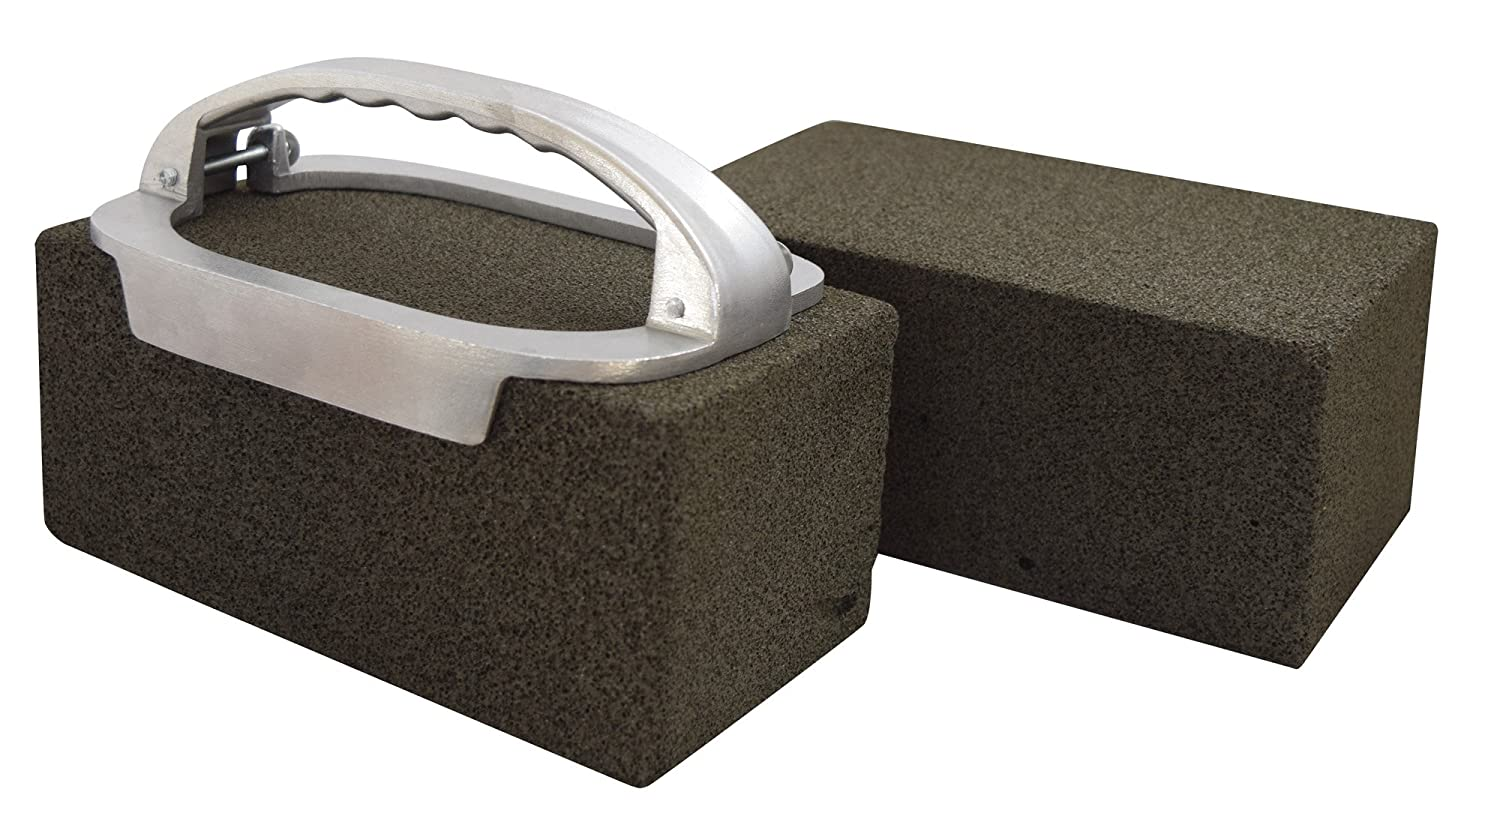 JA Kitchens Grill Brick Holder and Two Grill Bricks - Cleans Griddles and Grills